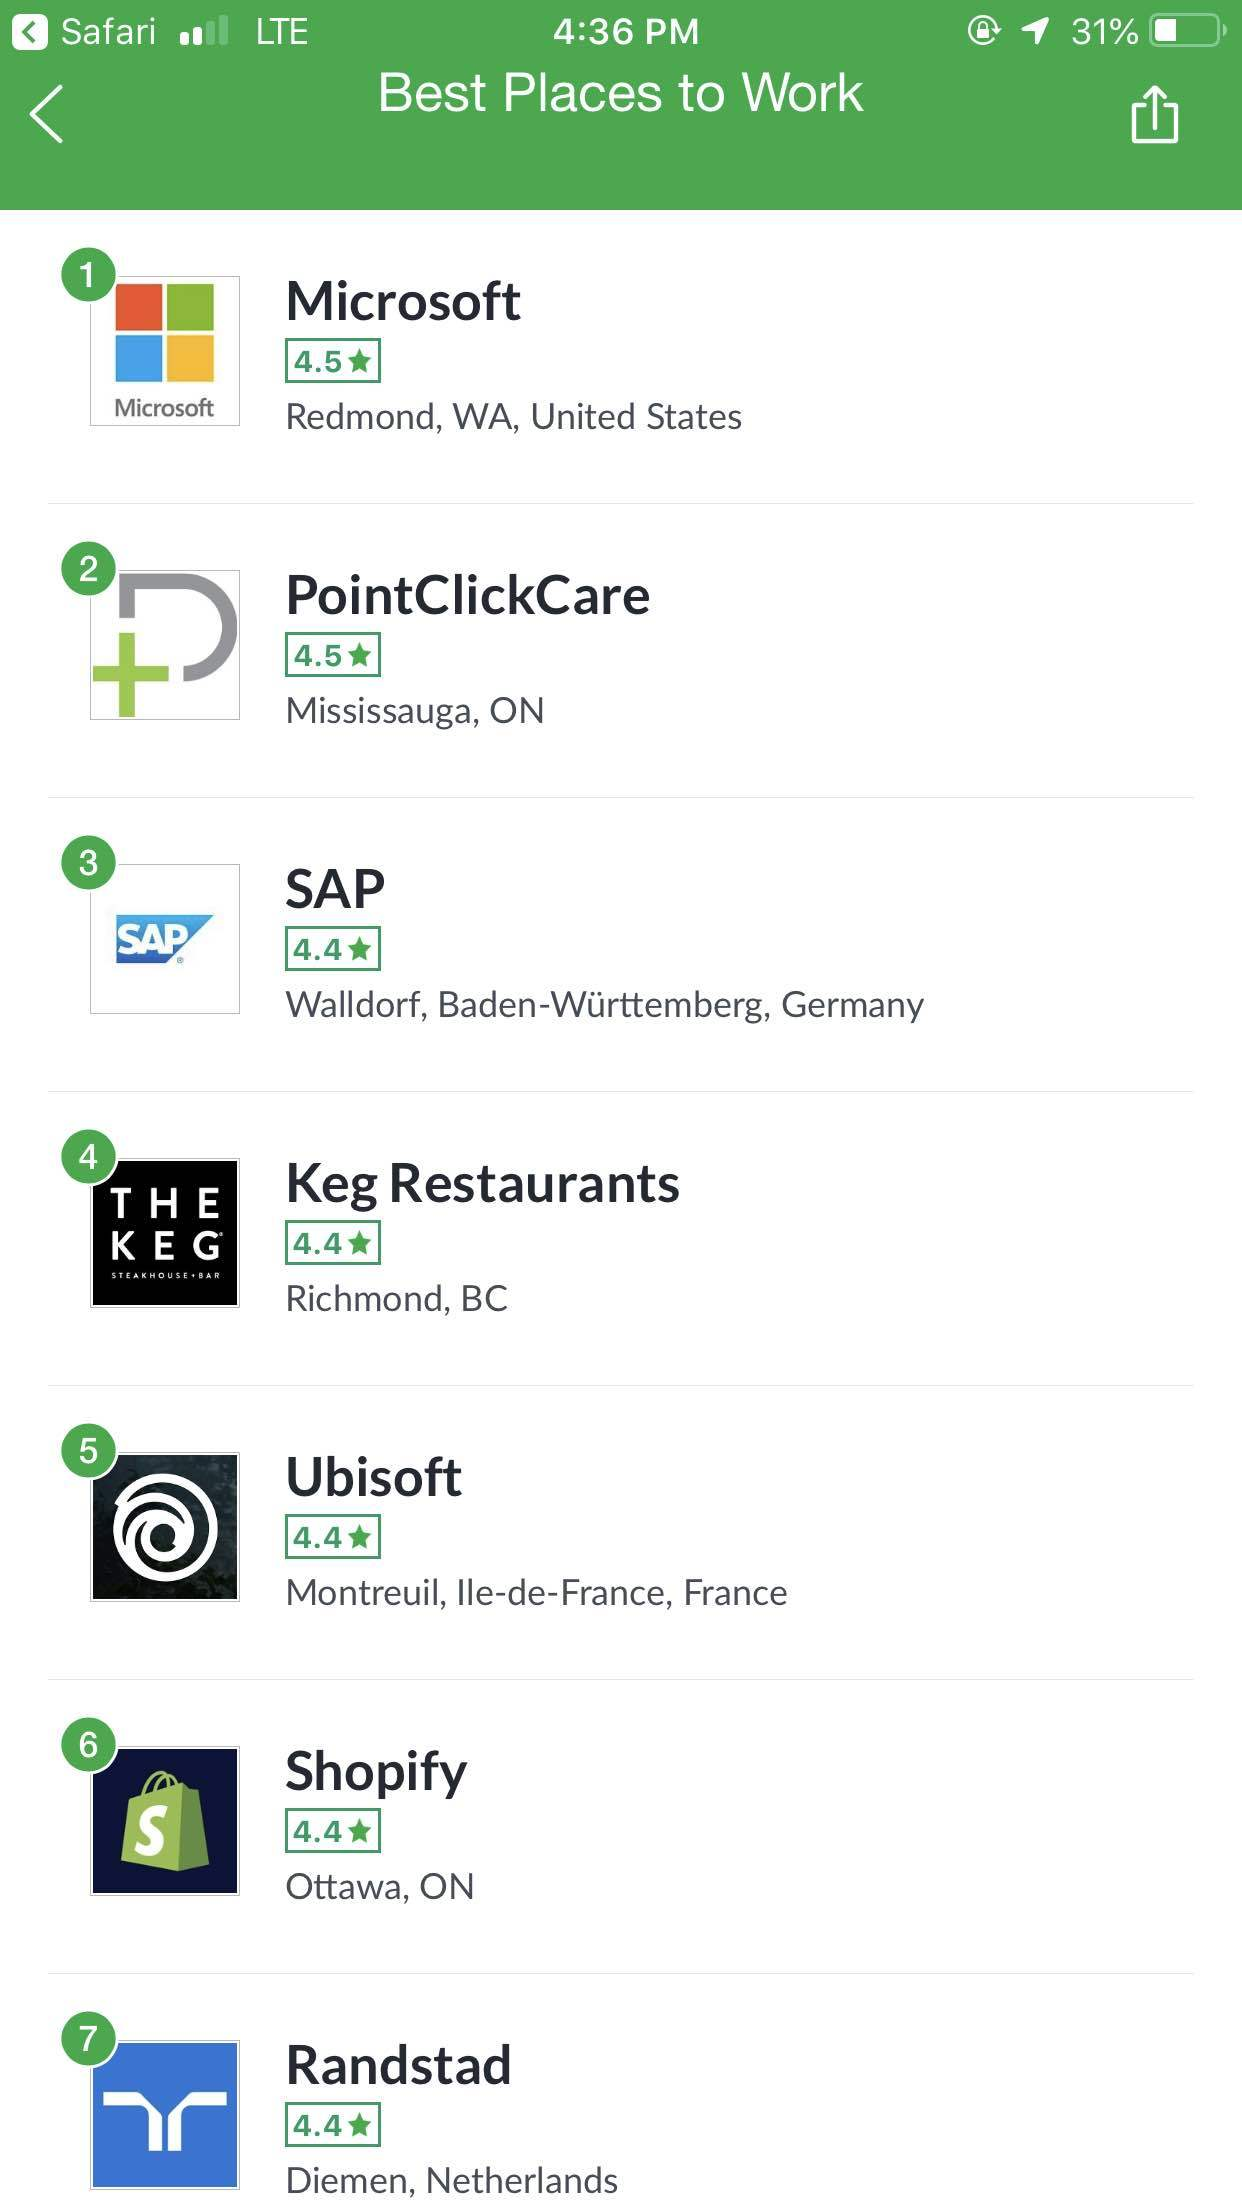 Top companies to work for in 2019